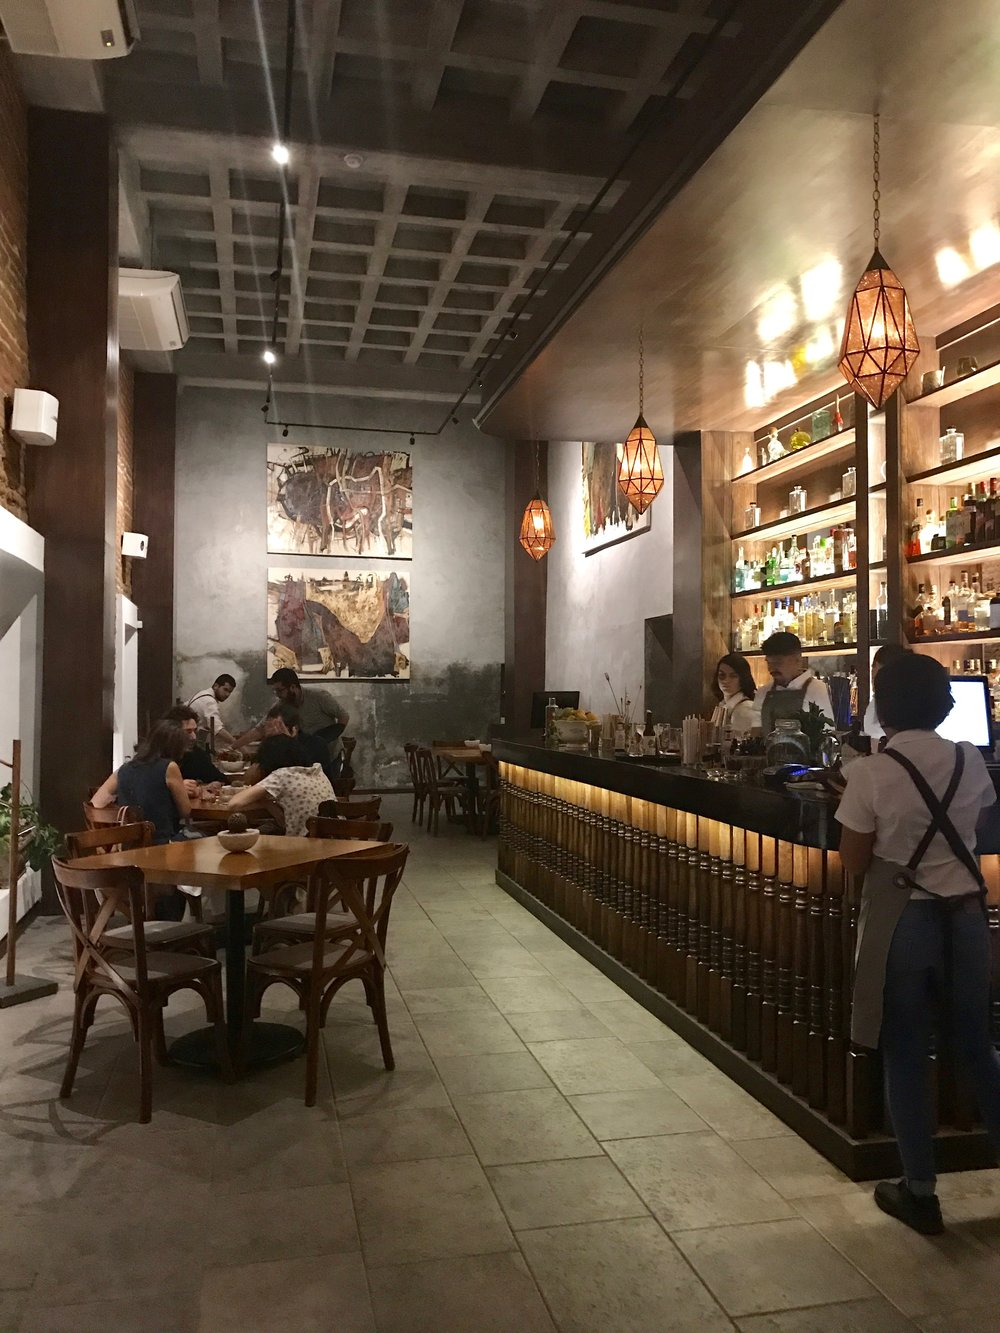 La Revolucion Comedor de Baja California    :   The name and decor evoke colonial Mexican glamour and bloodshed, however,the tacos are like tiny heaven pockets + everything is locally sourced.